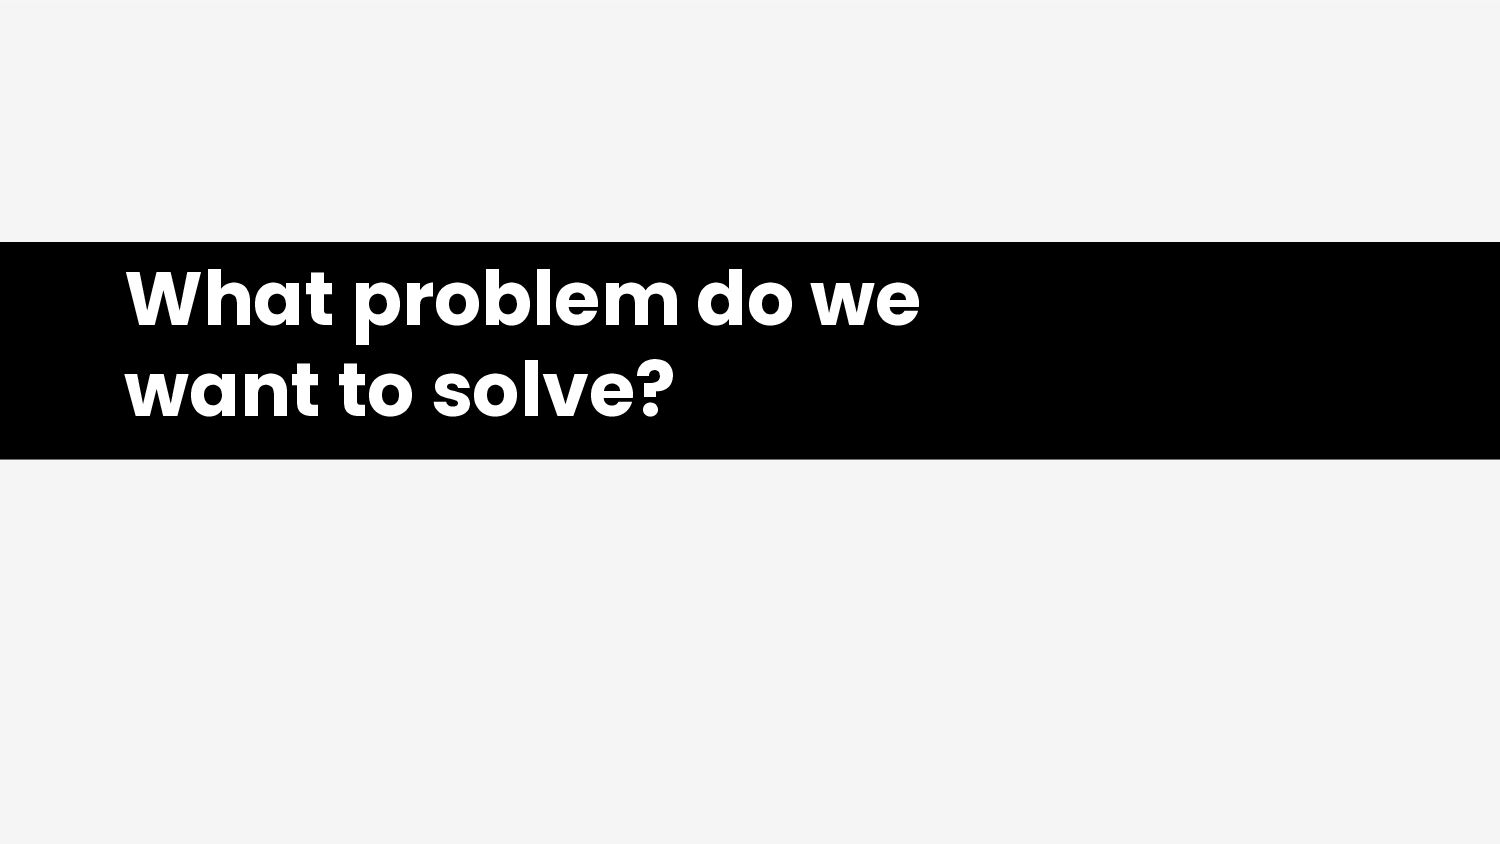 What problem do we want to solve?